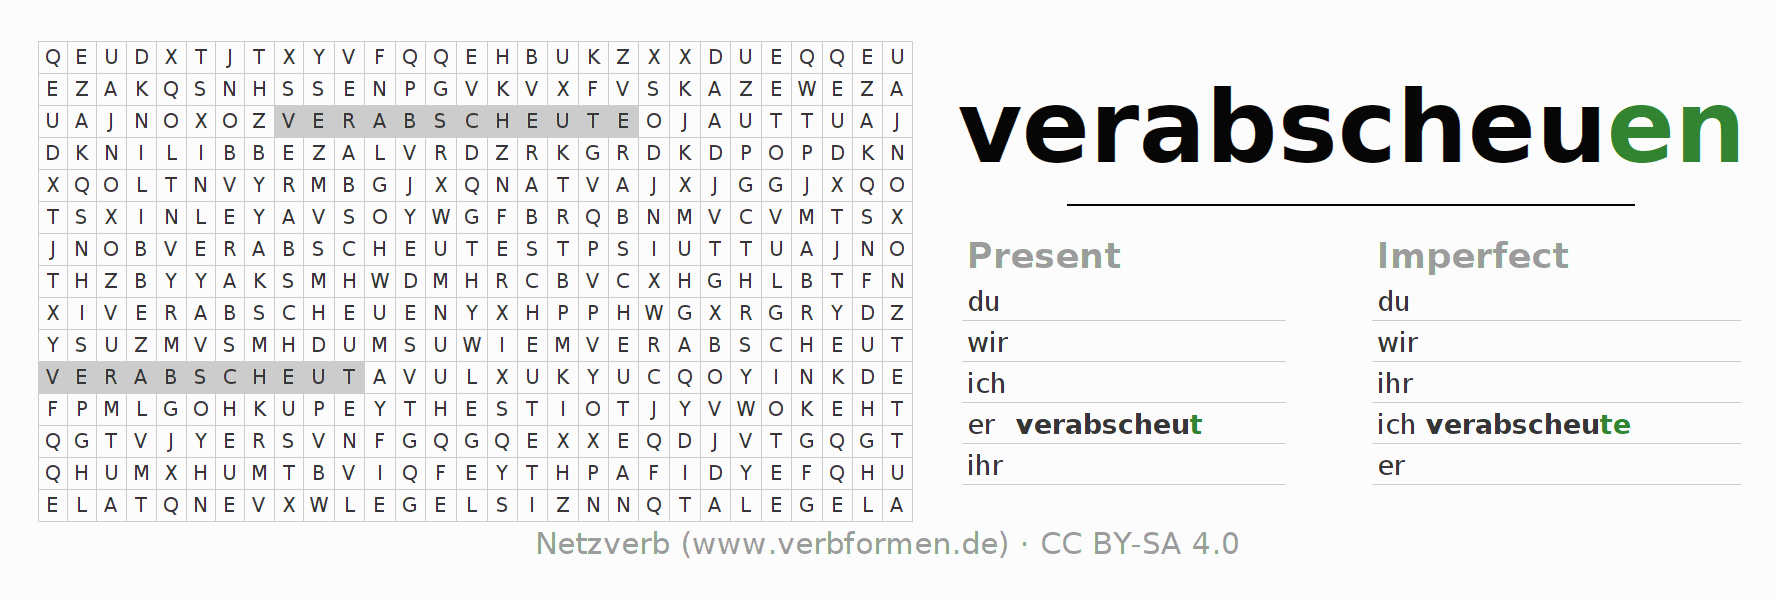 Word search puzzle for the conjugation of the verb verabscheuen